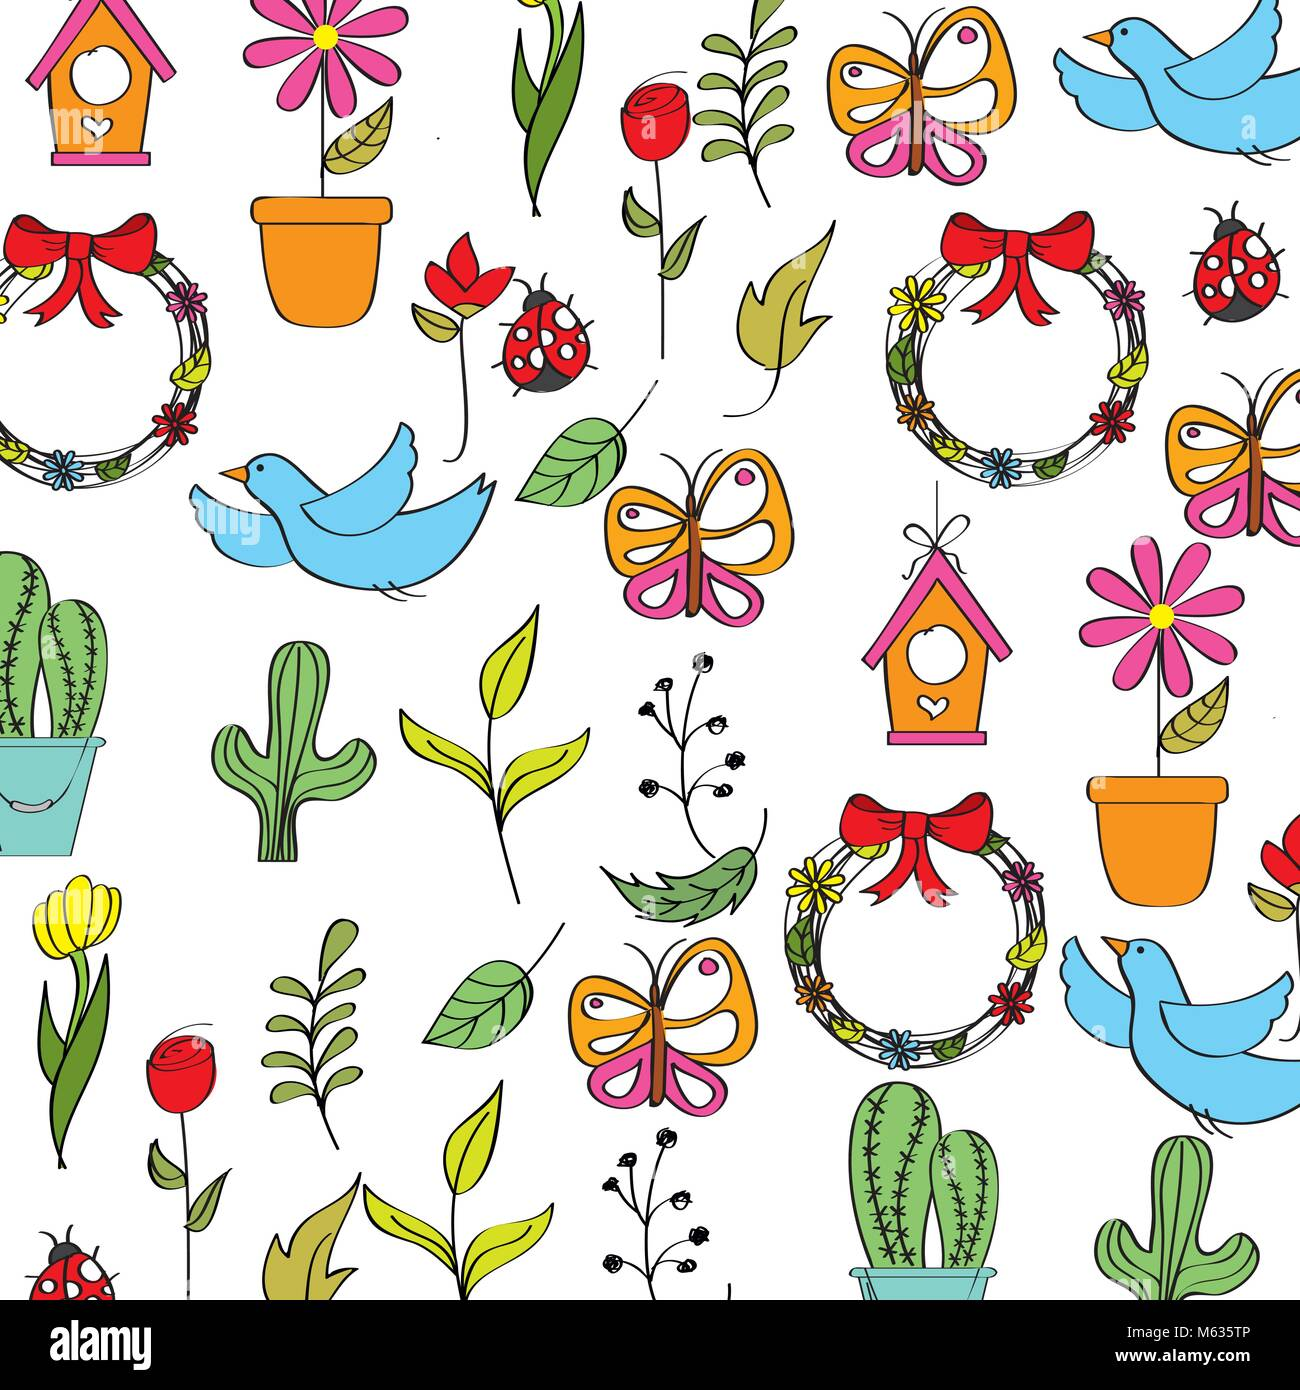 spring background with flowers butterflies ladybugs birds and leafs Stock Vector